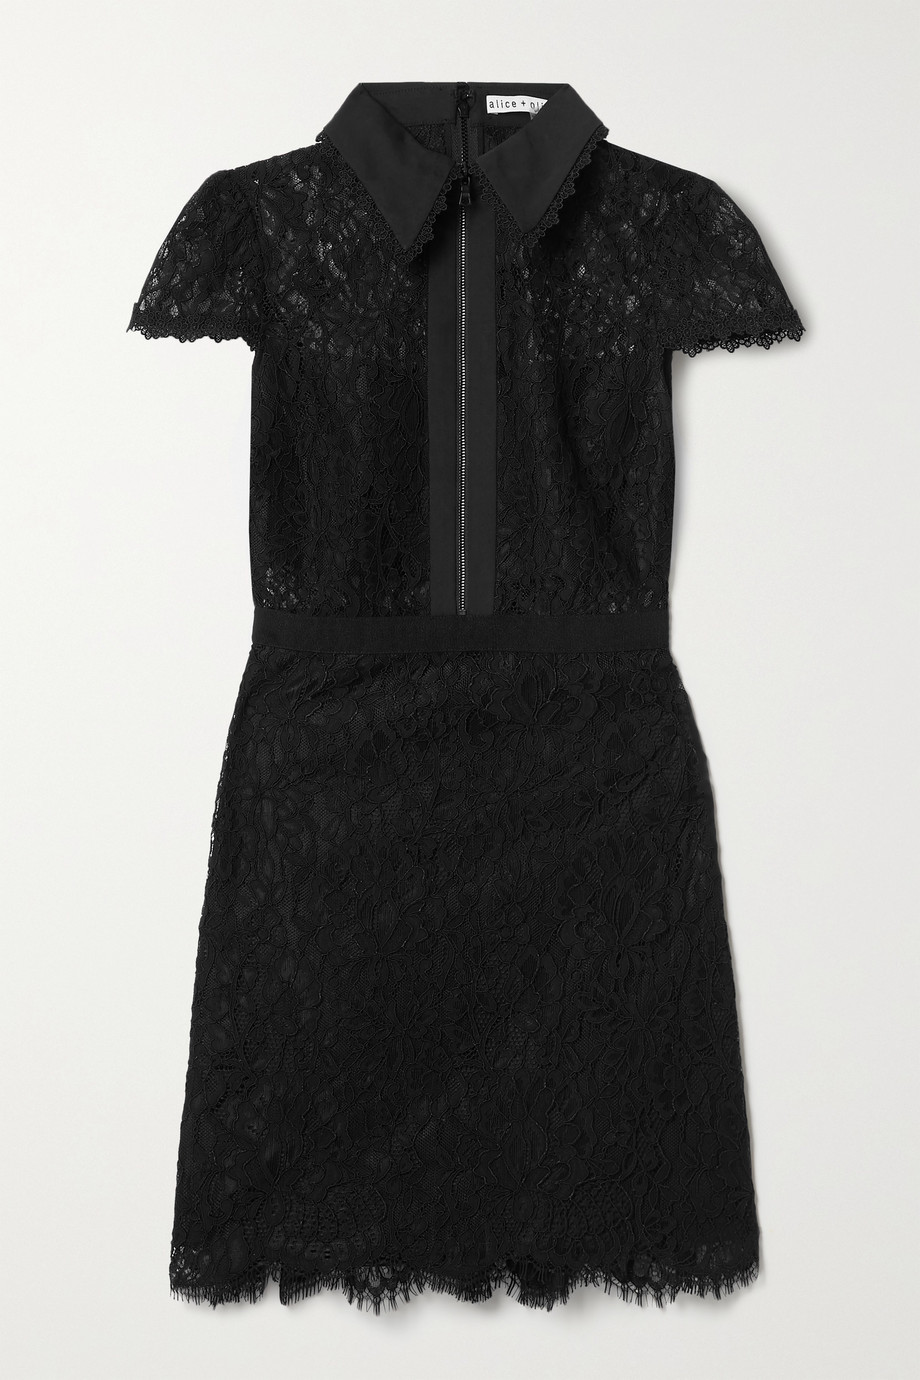 ALICE + OLIVIA Ellis cotton-poplin and grosgrain-trimmed corded lace mini dress